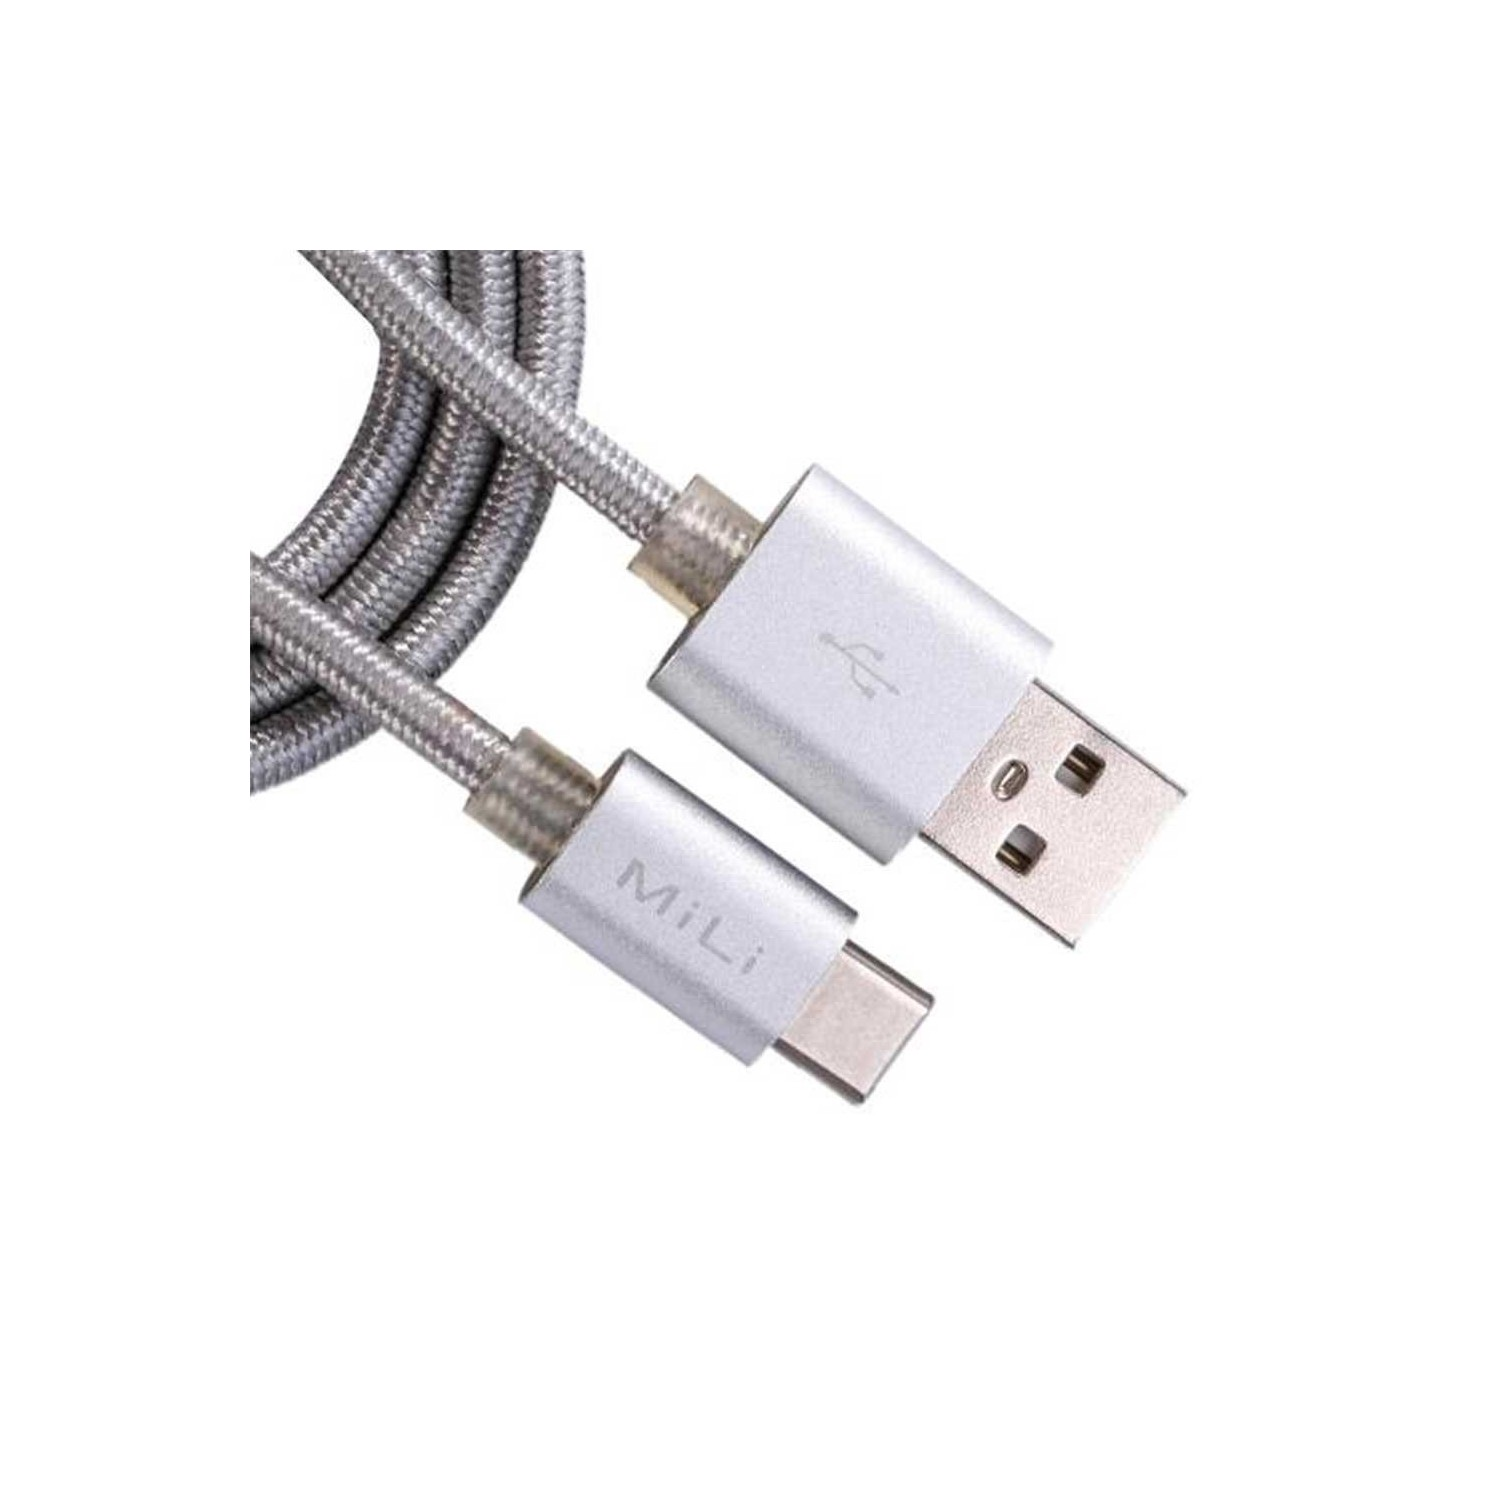 Cable Datos MILI Tipo C - Tejido Plata - 1m Universal